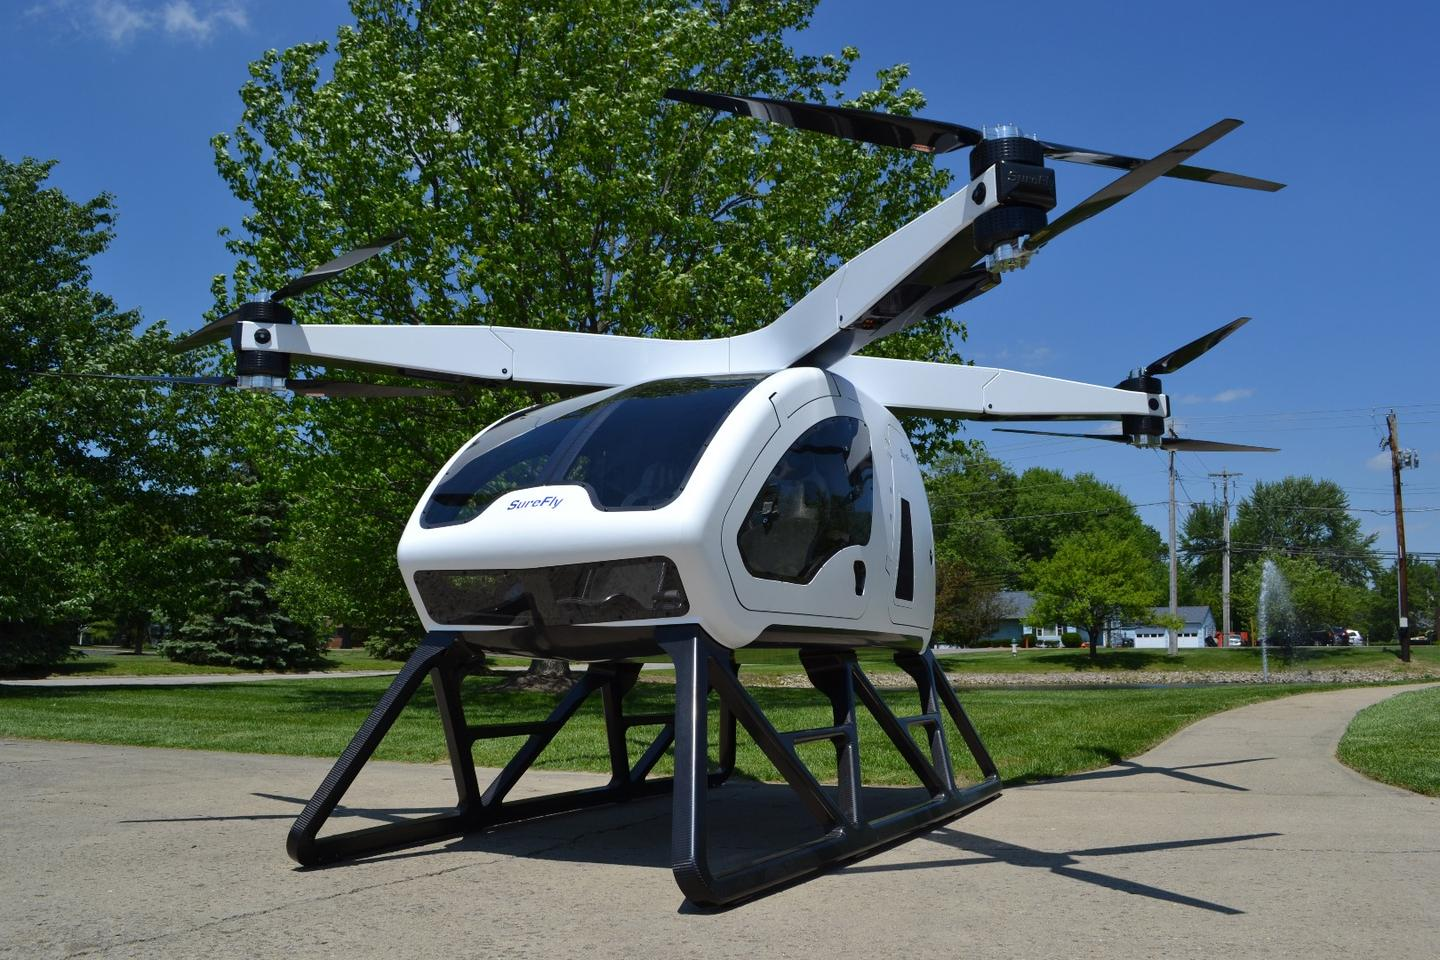 Workhorse announced today that it has received an Experimental Airworthiness Certificate for SureFly from the Federal Aviation Administration